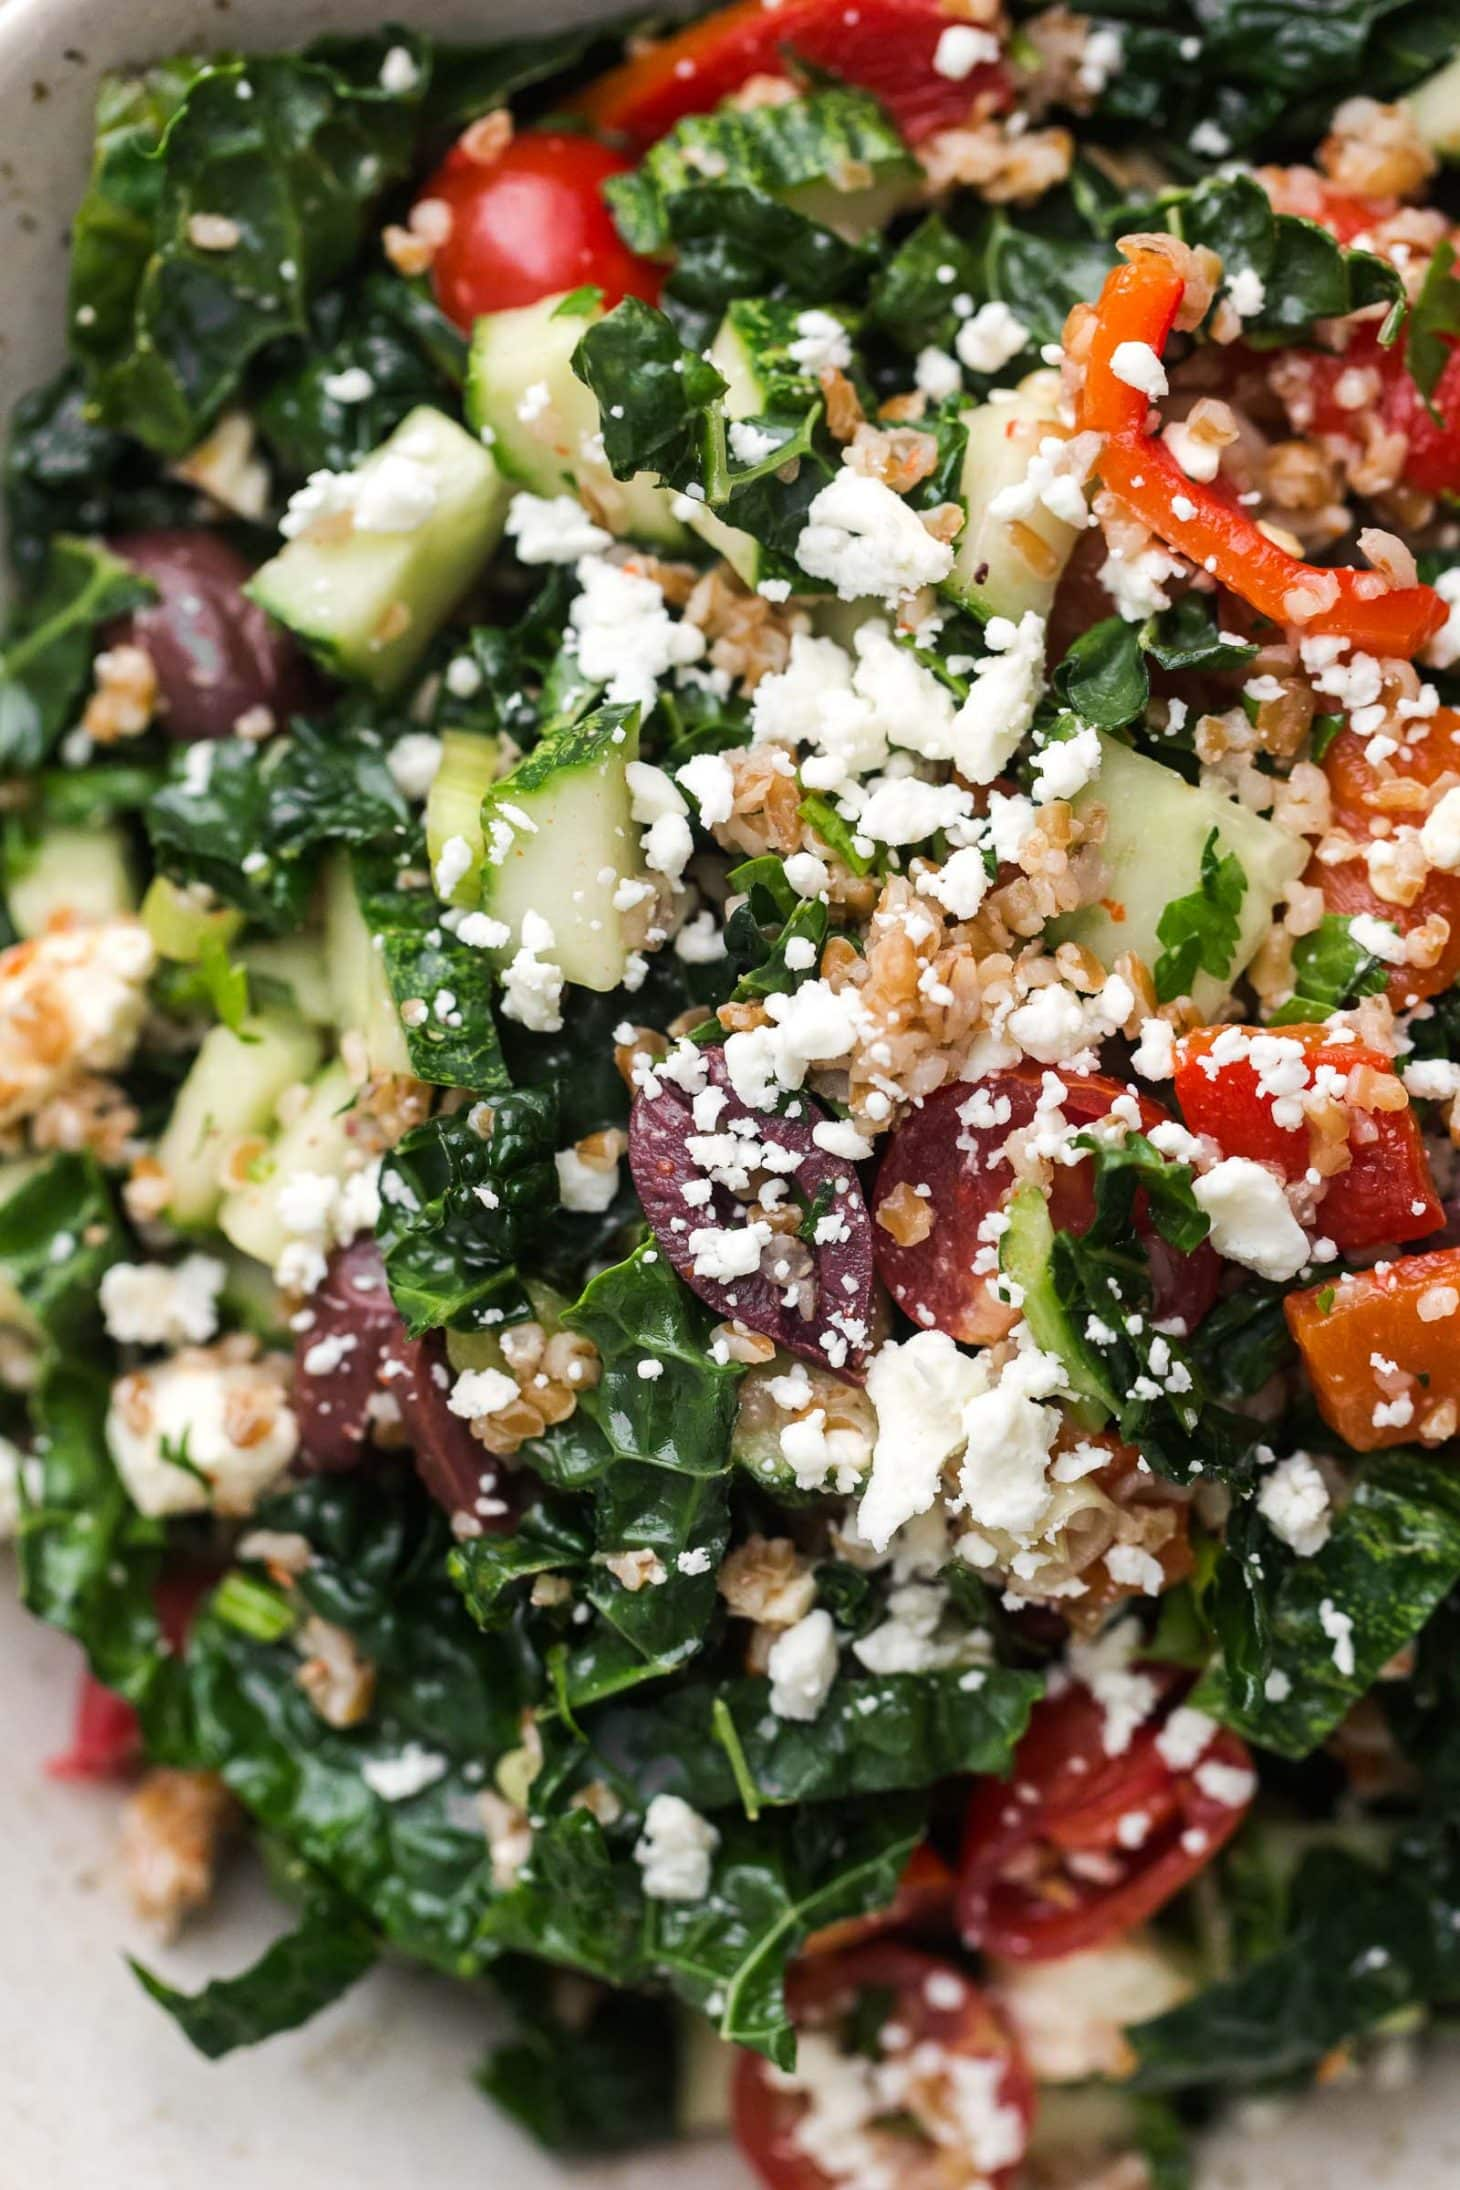 Ankh Rah's Healthy Living Guide: Mediterranean Kale Salad ...